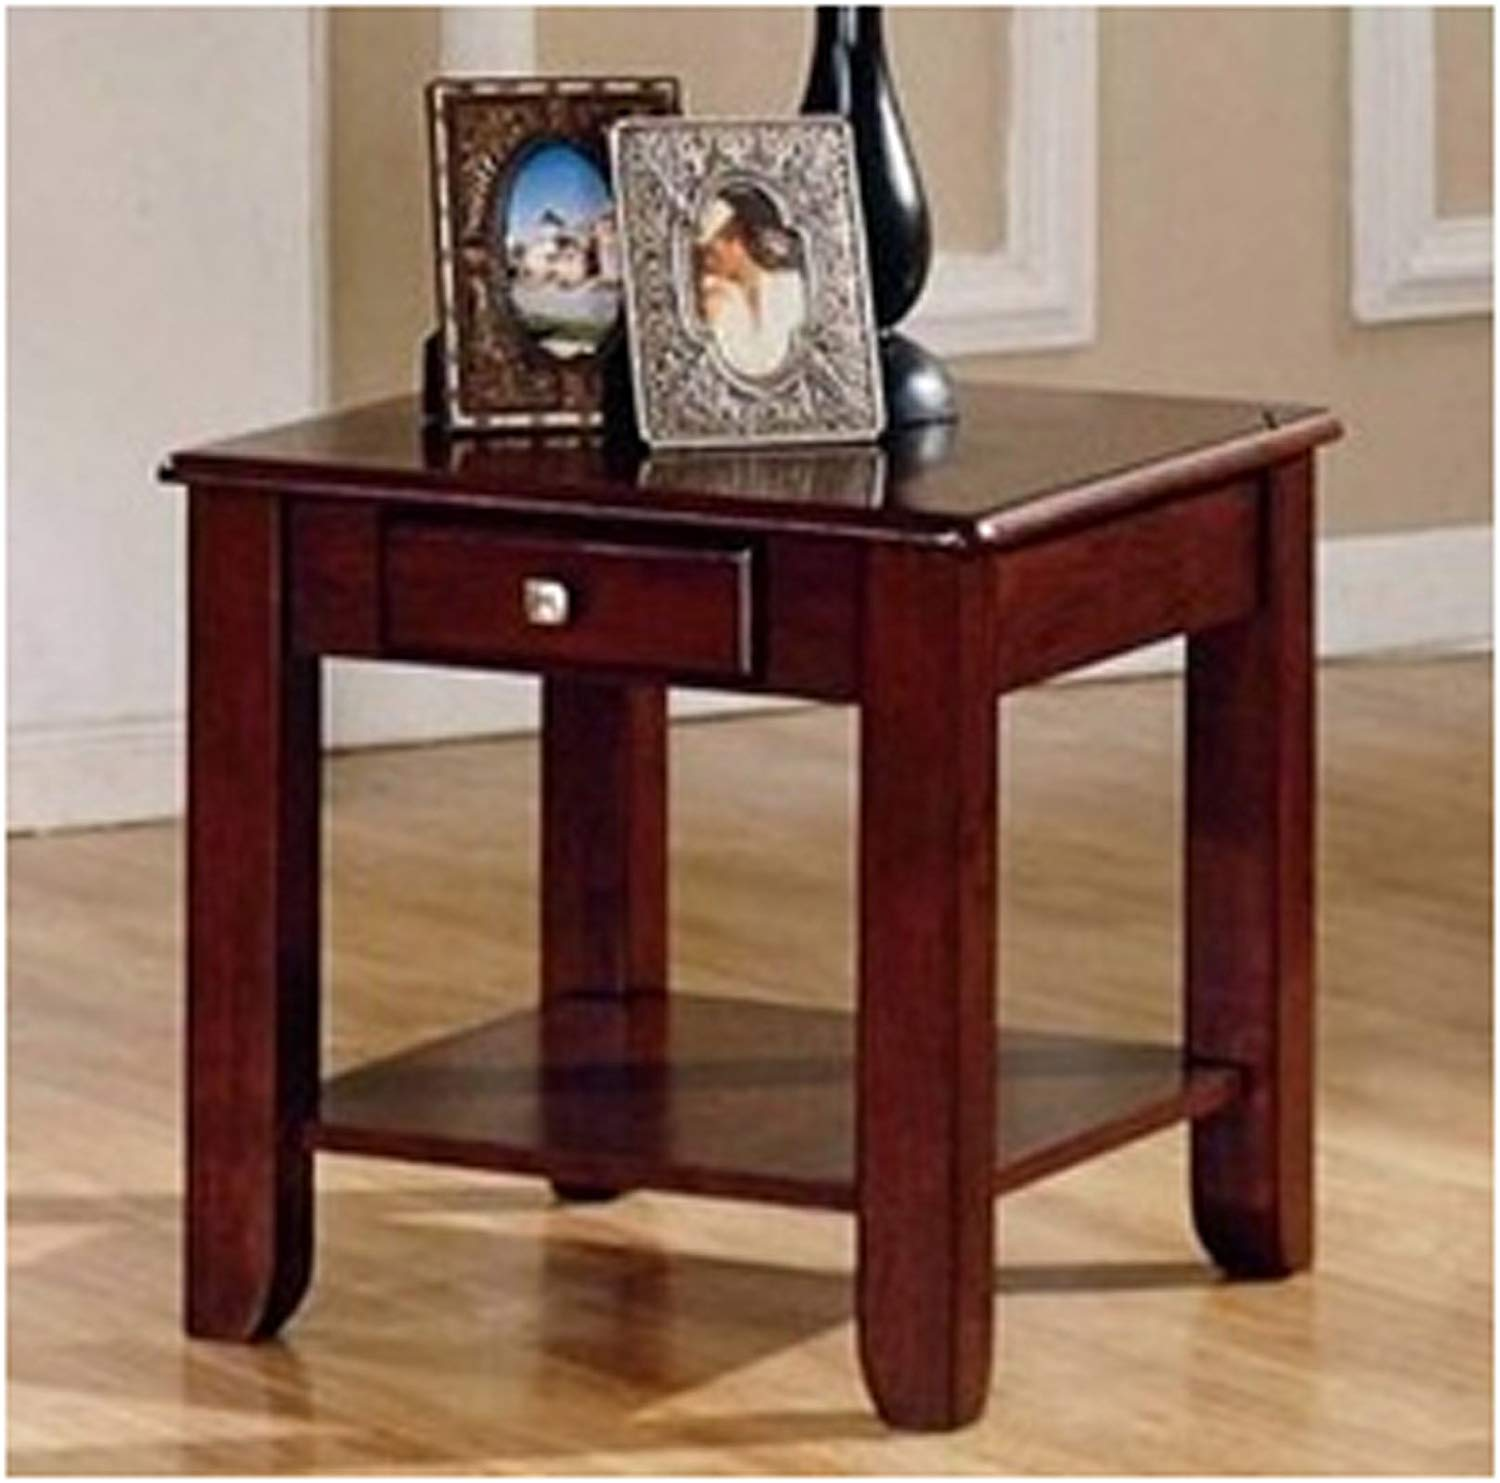 nelson wood cherry color end table drawer home kitchen tables with piece coffee and console pub dining room sets glass tops legends furniture sausalito ashley north shore round